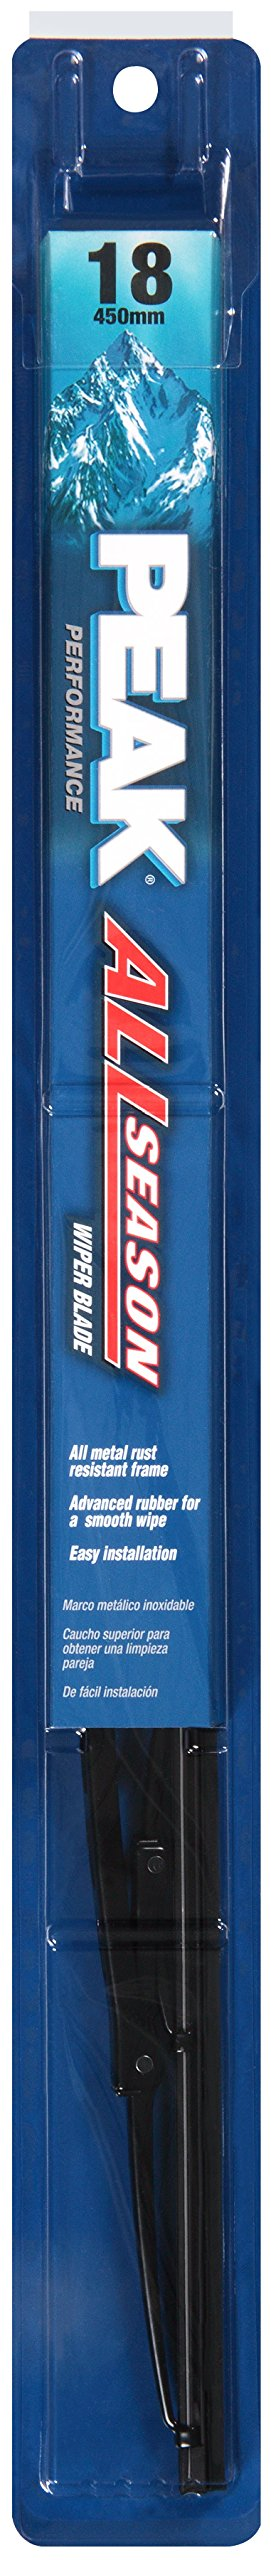 Peak ASV181 All Season 18-Inch Wiper Blade (Pack of 1) by Peak (Image #1)